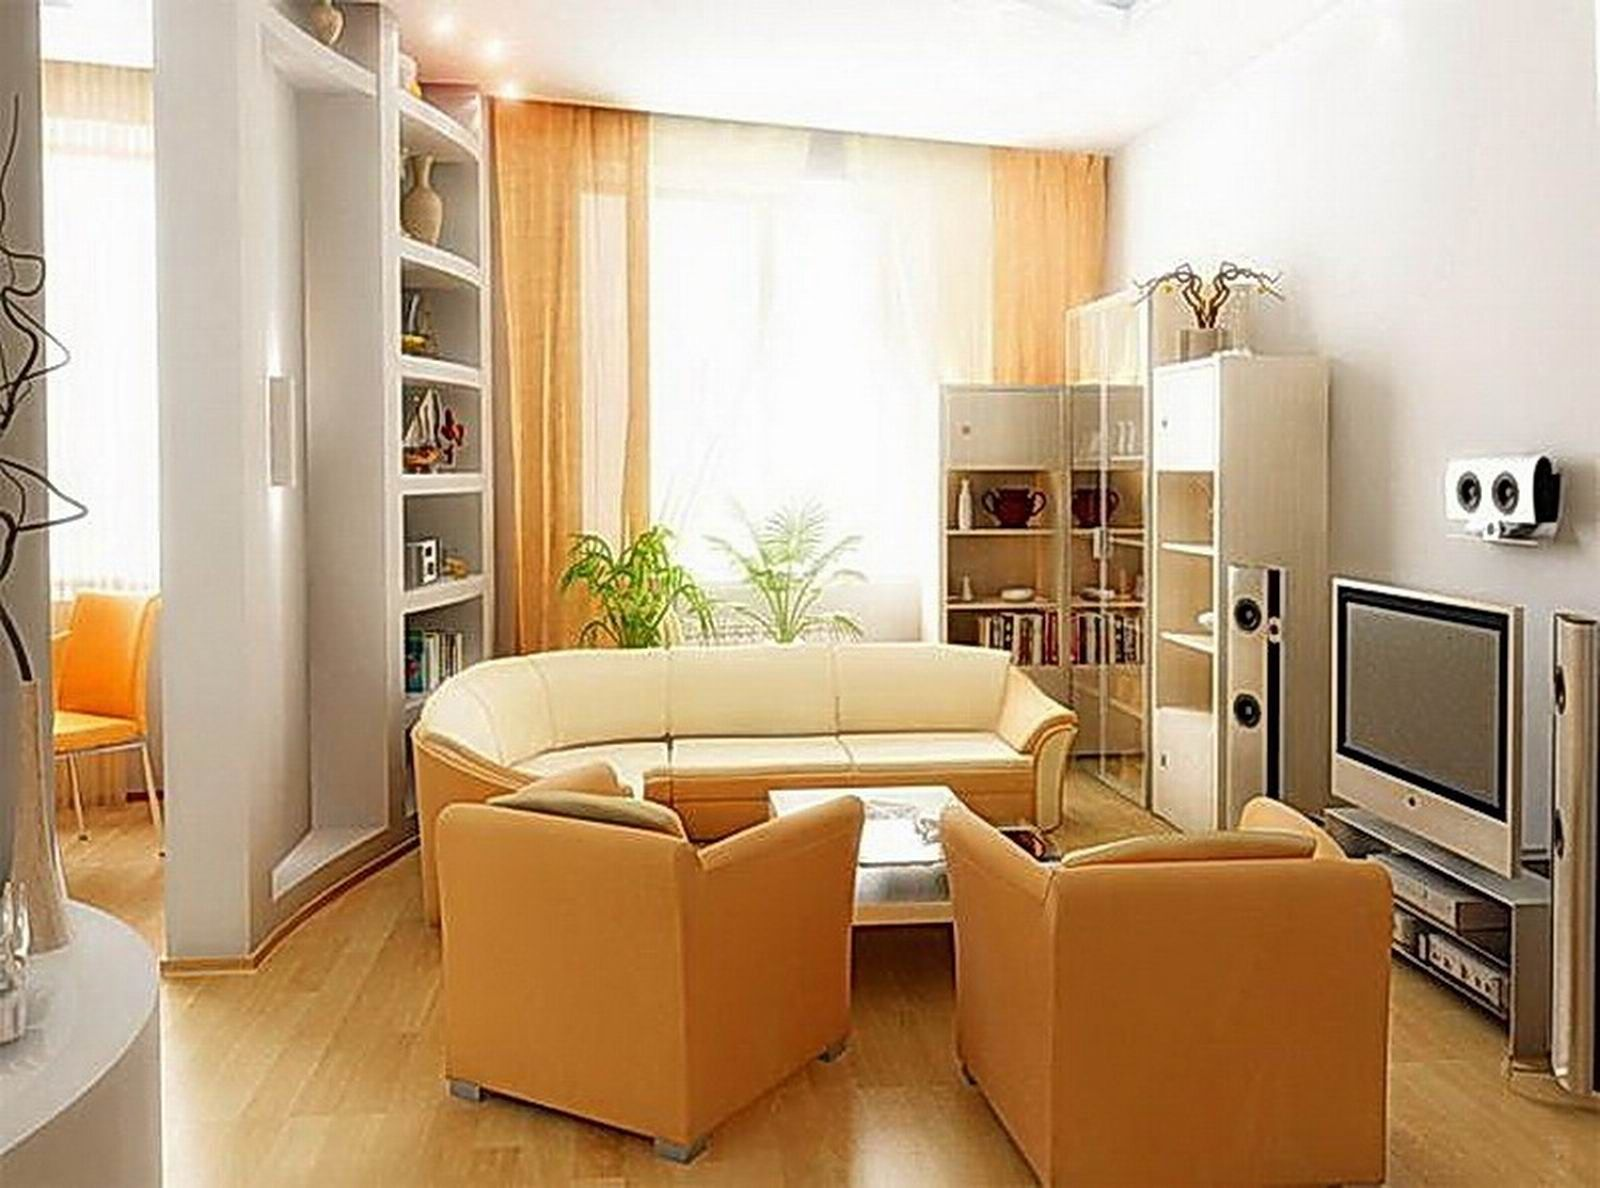 Best Furniture Arrangement Tv Room Decorating Ideas Small 400 x 300